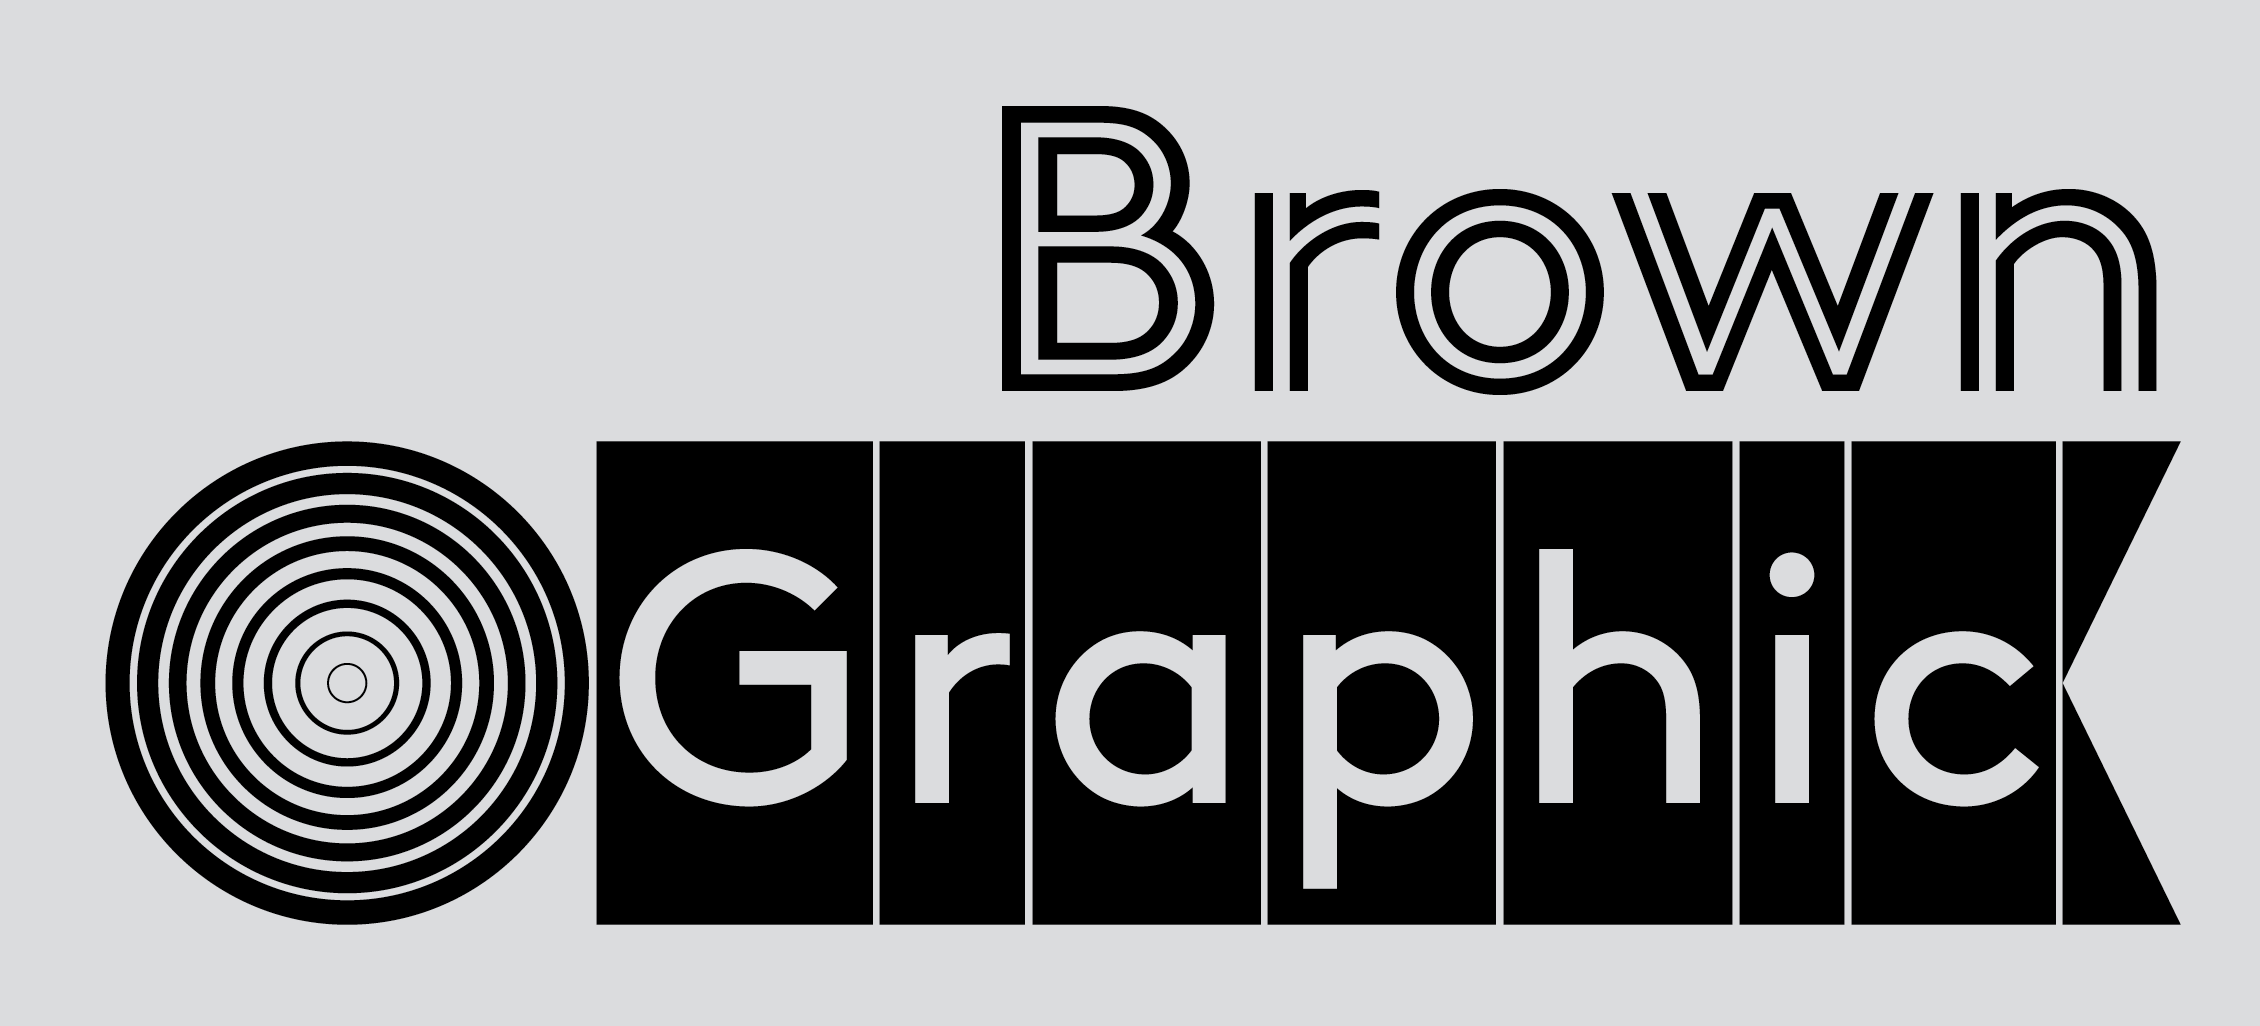 Brown Graphic and Brown Mono were added to LL Brown